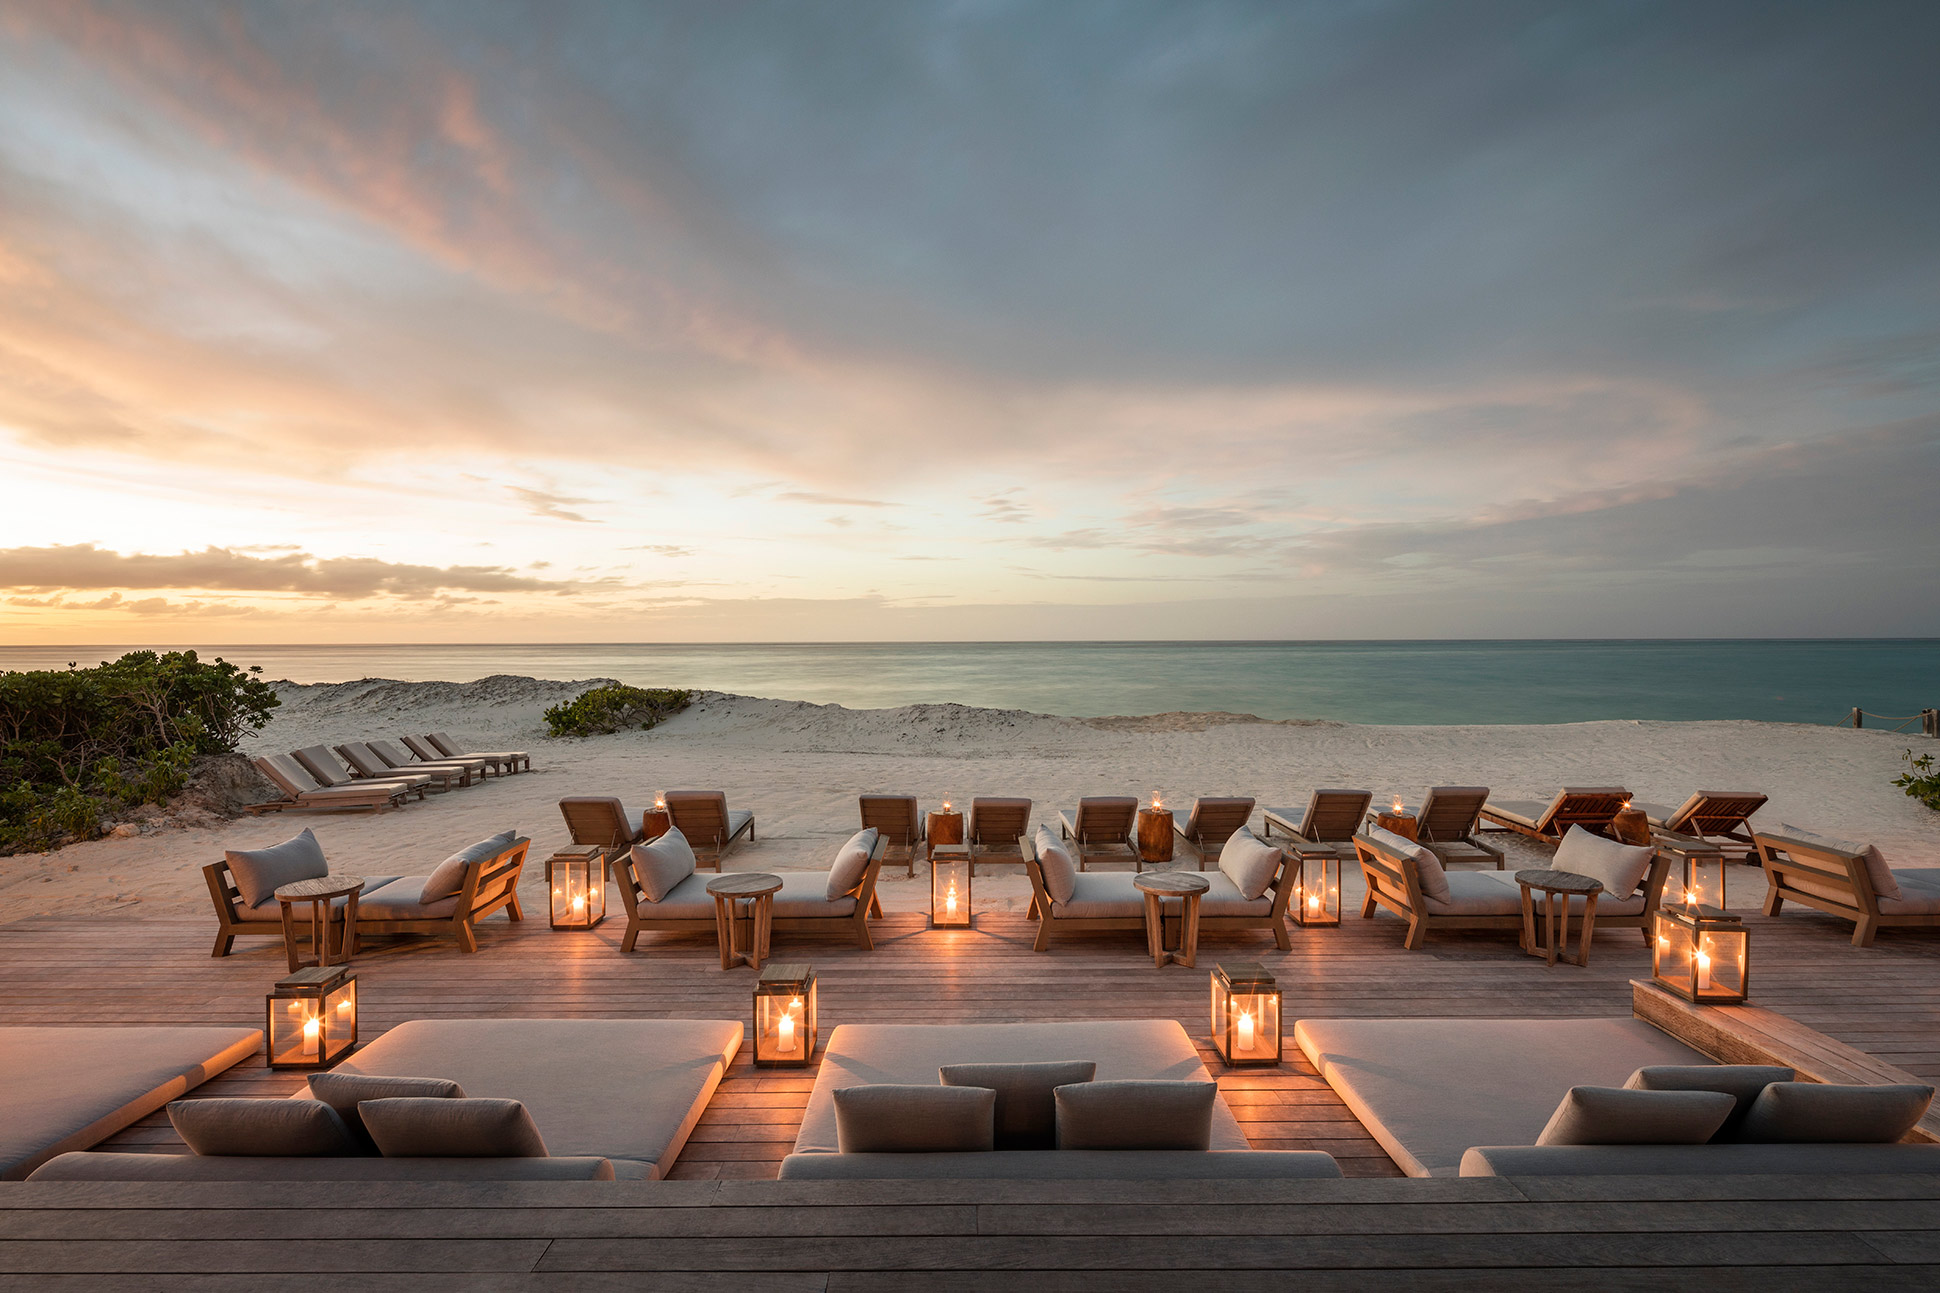 Turks and Caicos retreat sunset with loungers and beach views